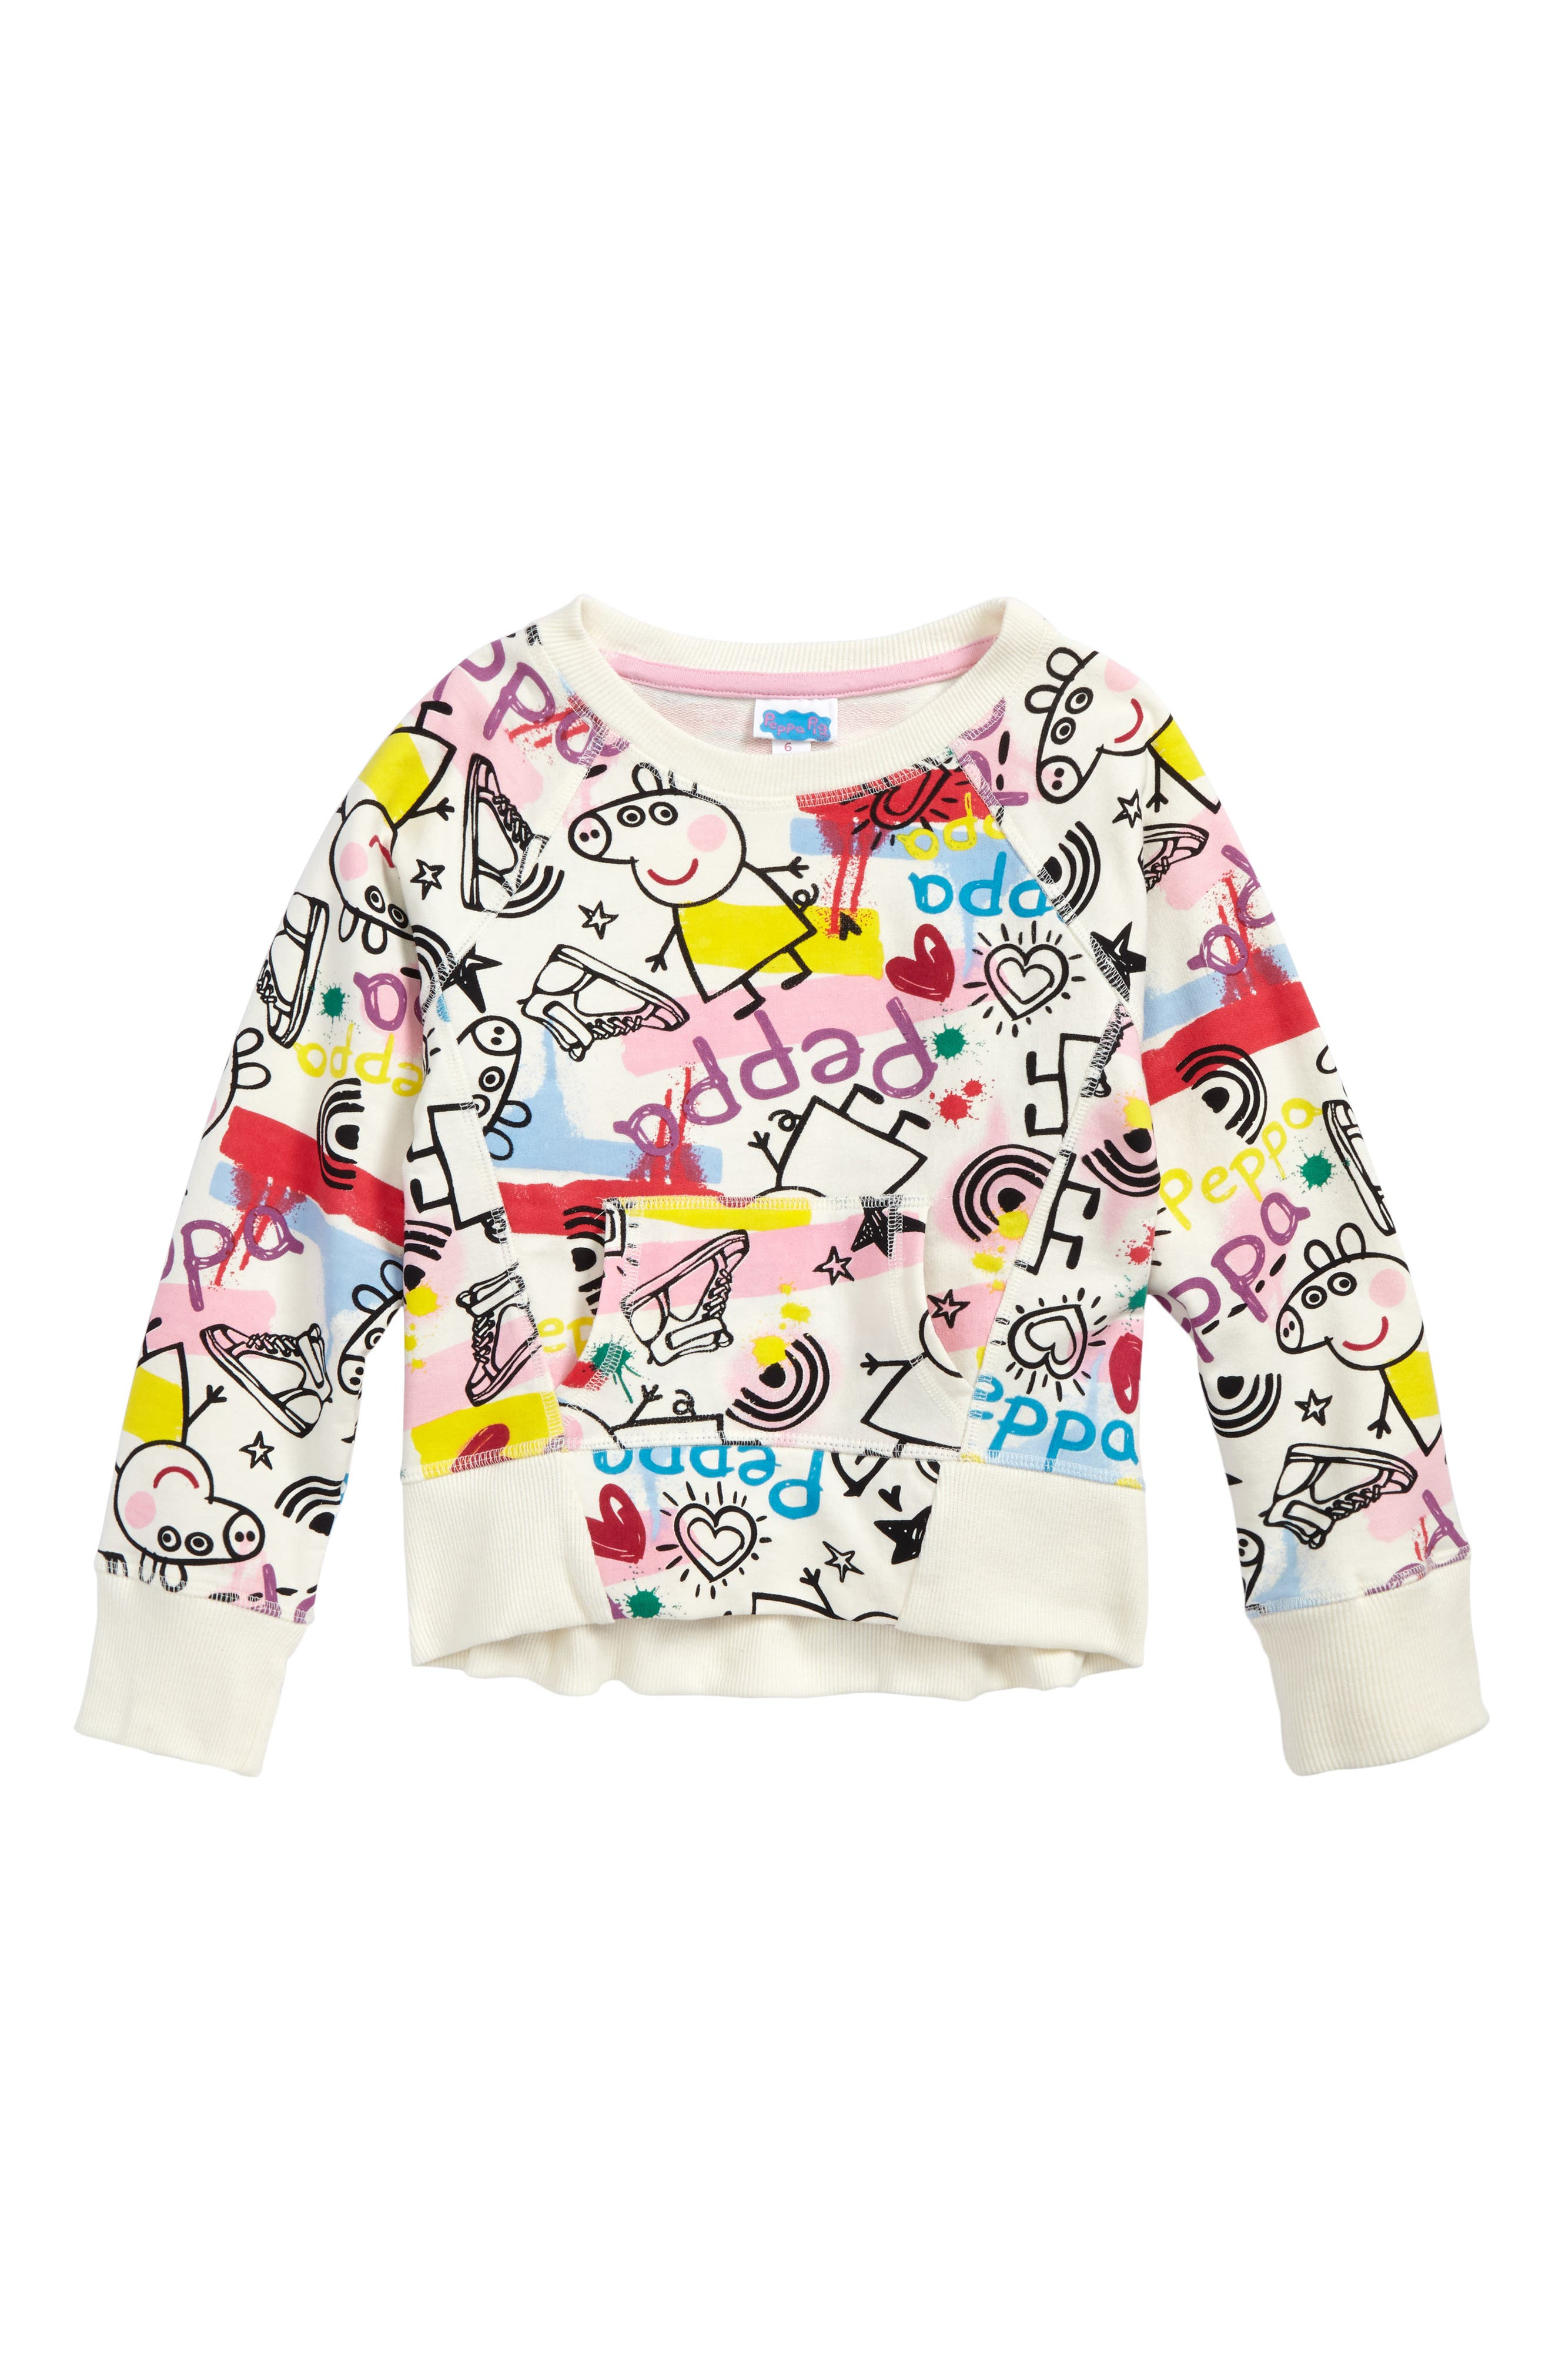 Alternate Image 1 Selected - Happy Threads Peppa Pig Graphic Sweatshirt (Toddler Girls & Little Girls)